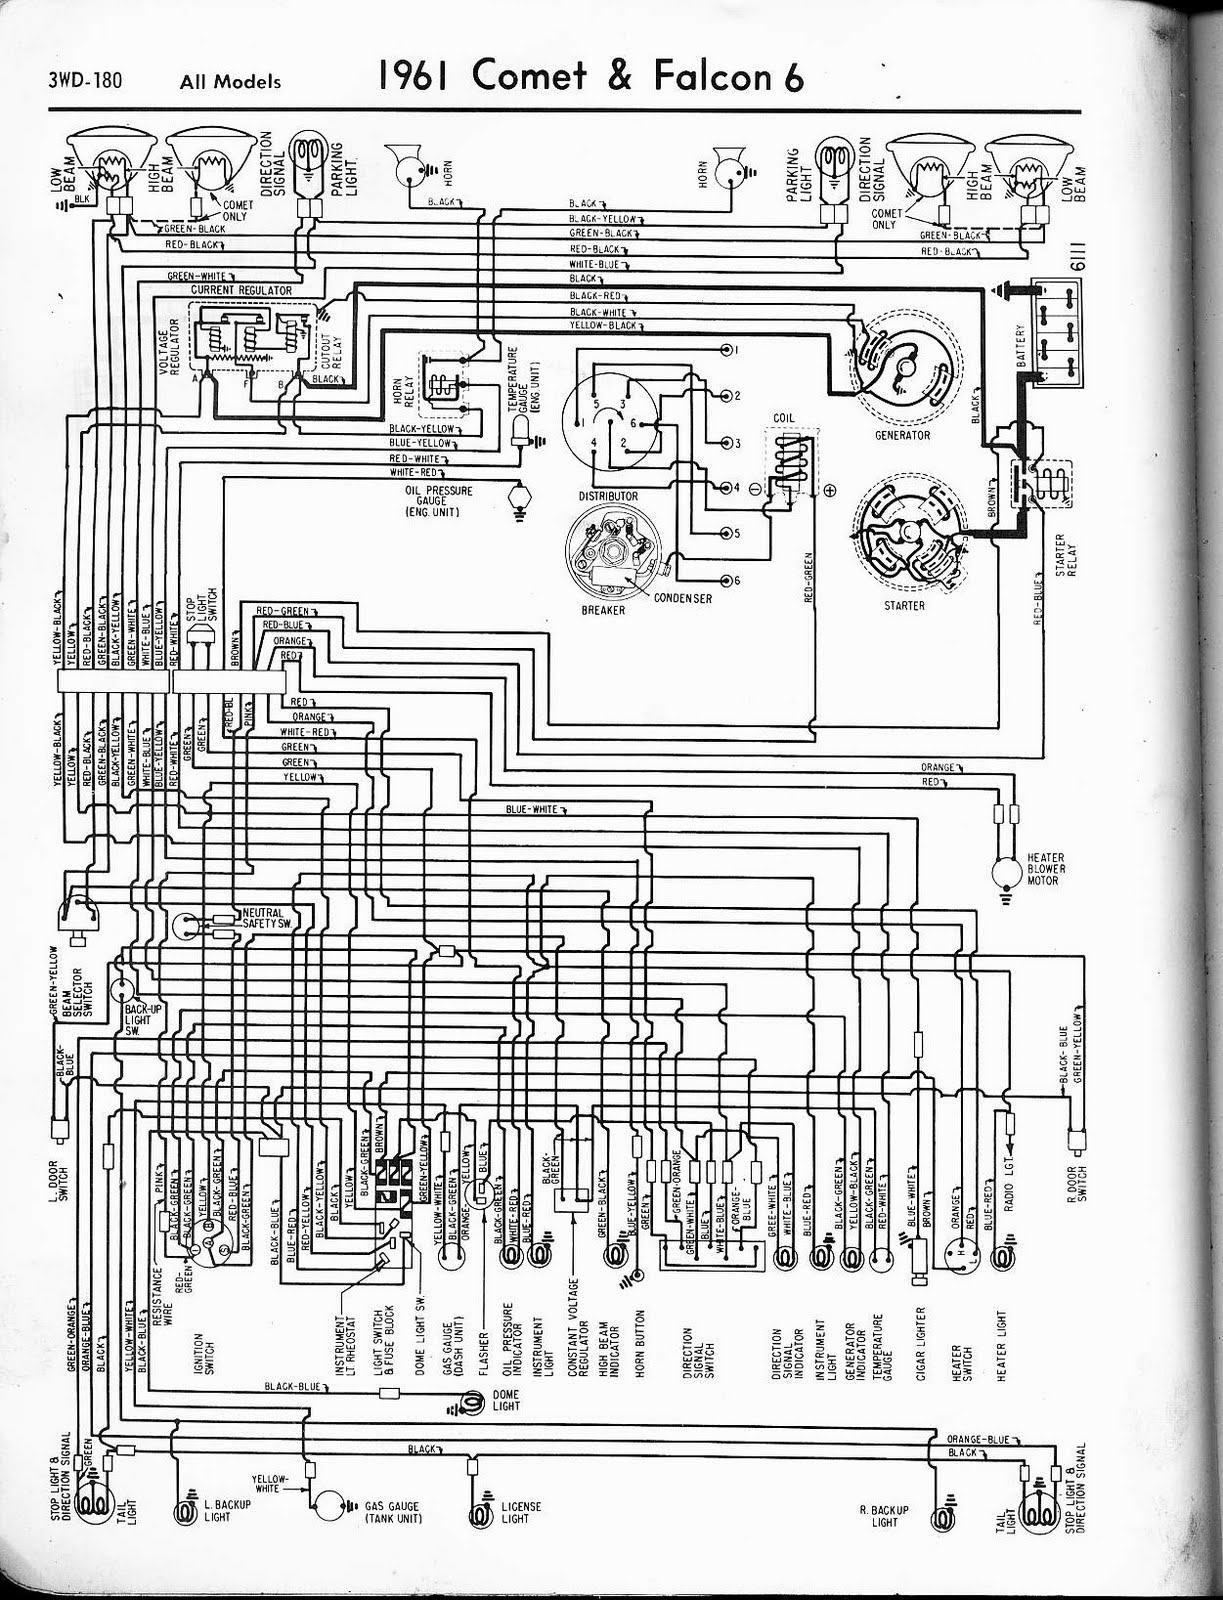 Free Auto Wiring Diagram 1970 Plymouth Belvedere Runner Satellite Electrical Diagrams This Is A Of 1961 Ford Falcon Comet It Shows The Various Circuits Fuses Distributor Etcclick Picture To Download